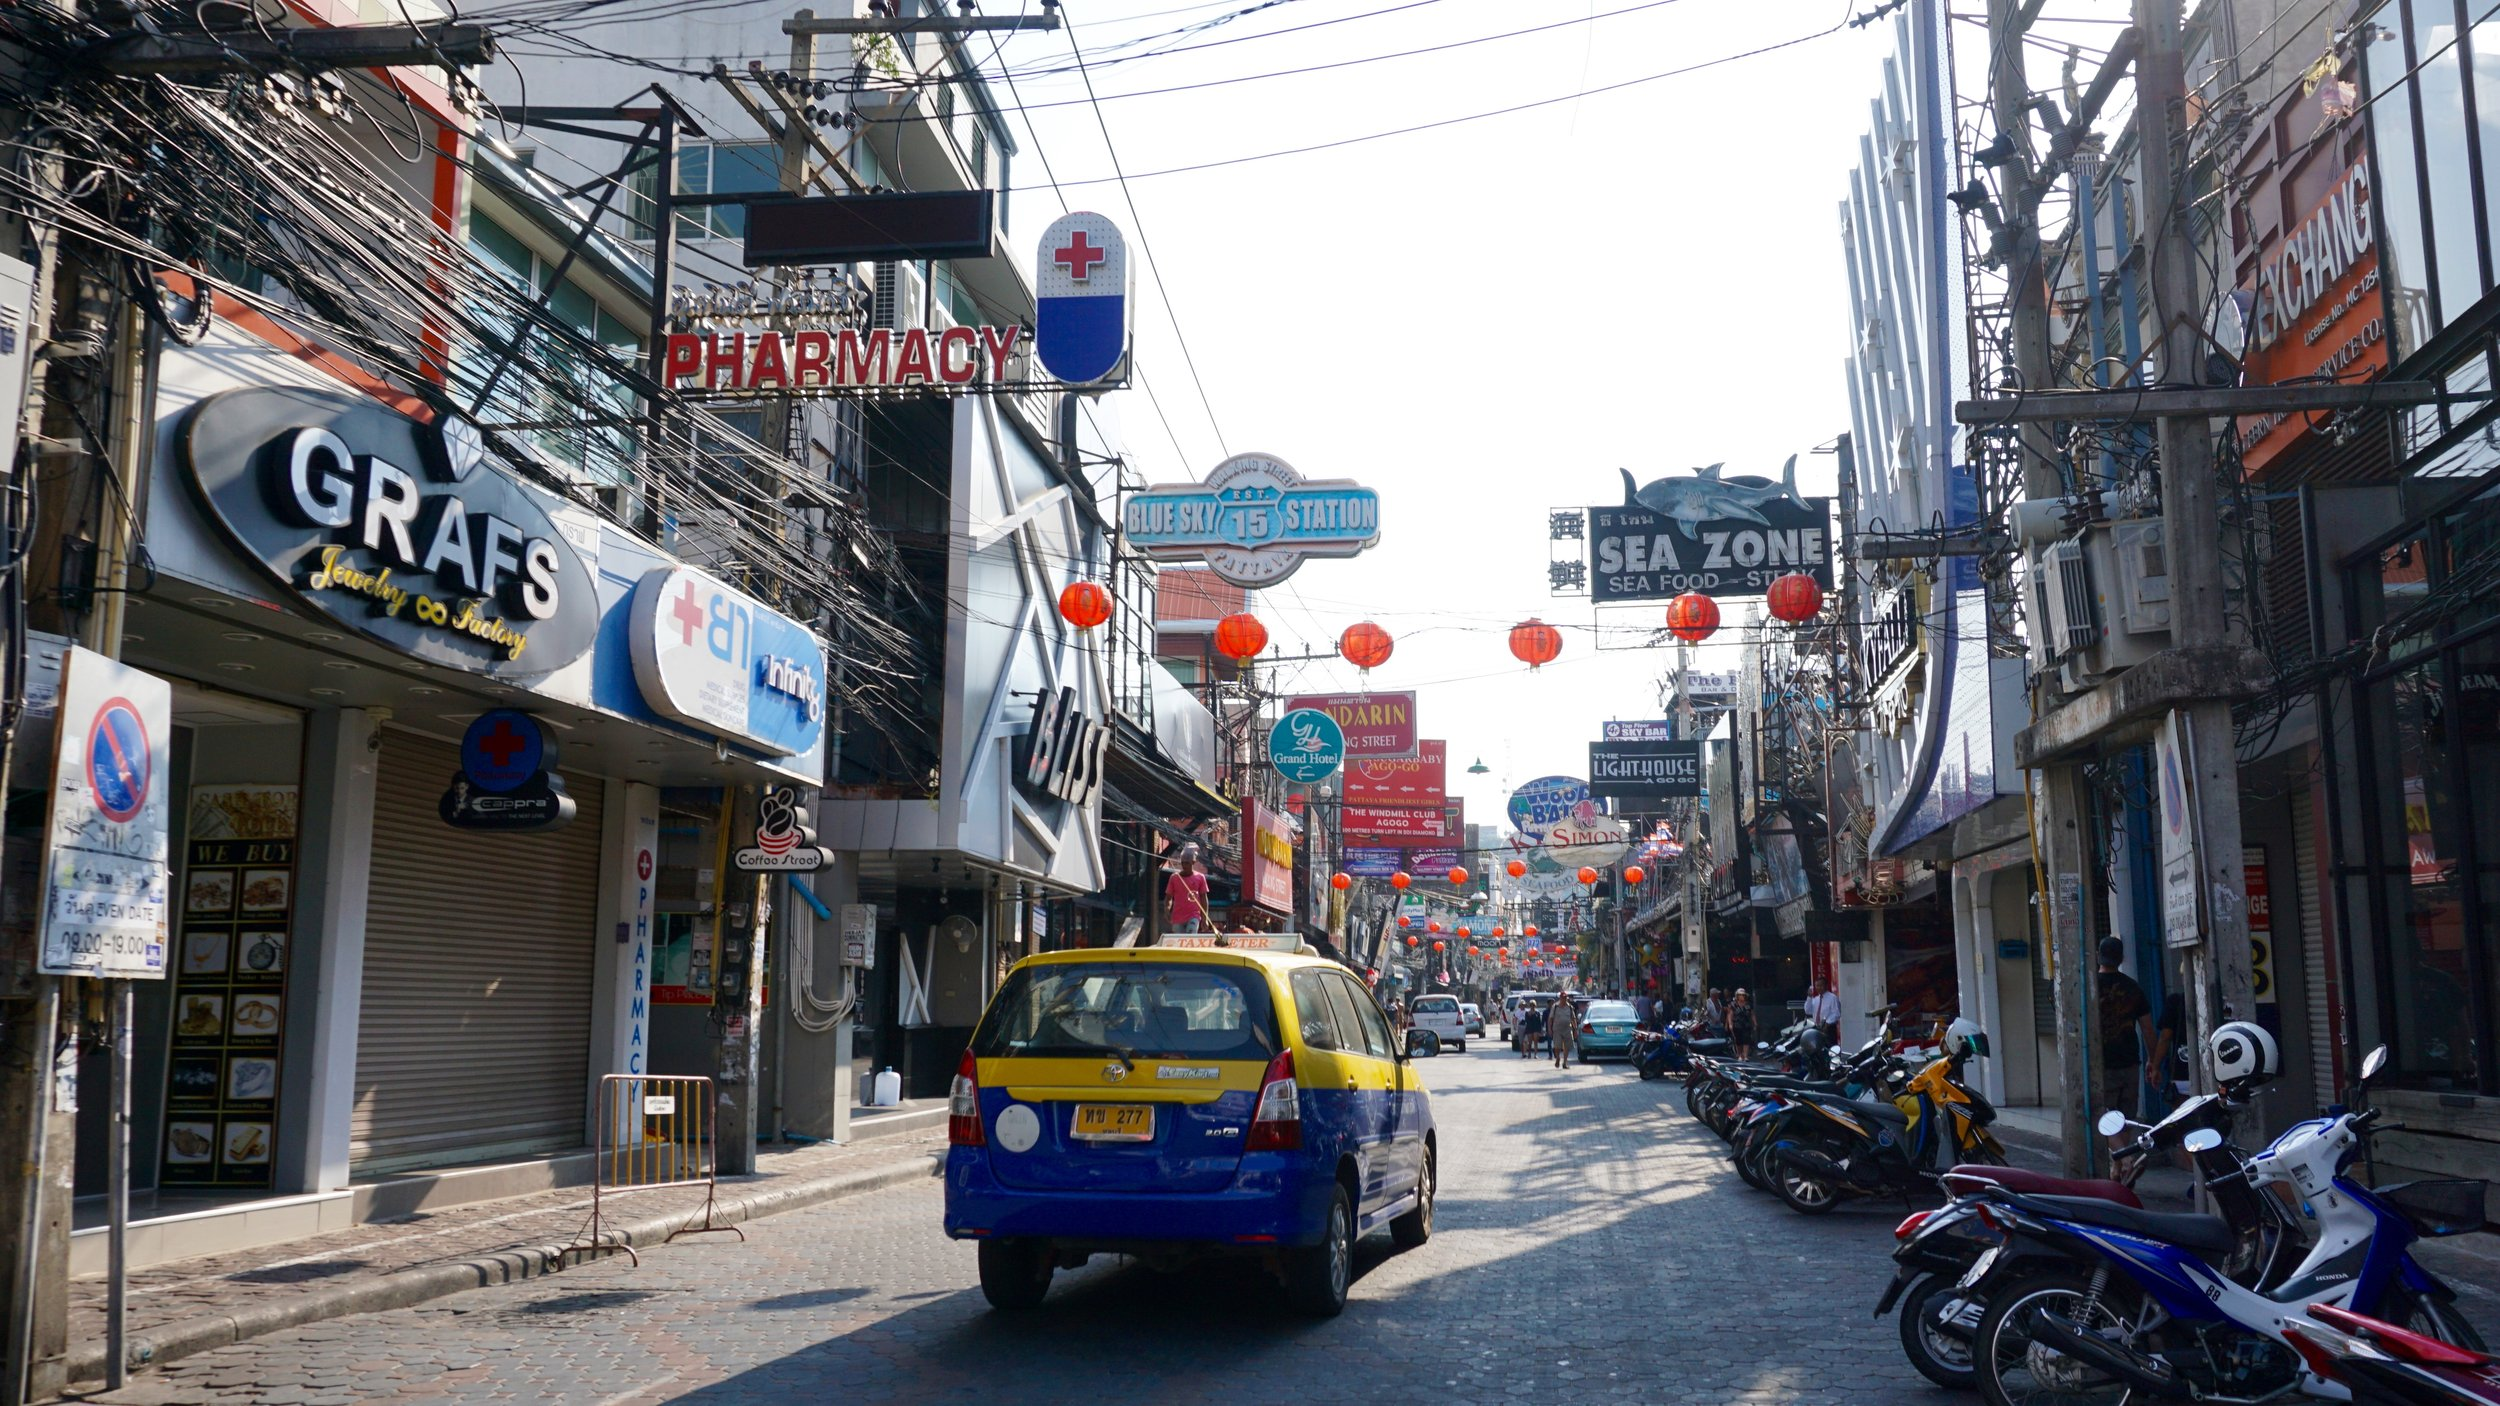 Walking Street in downtown Pattaya during the day.